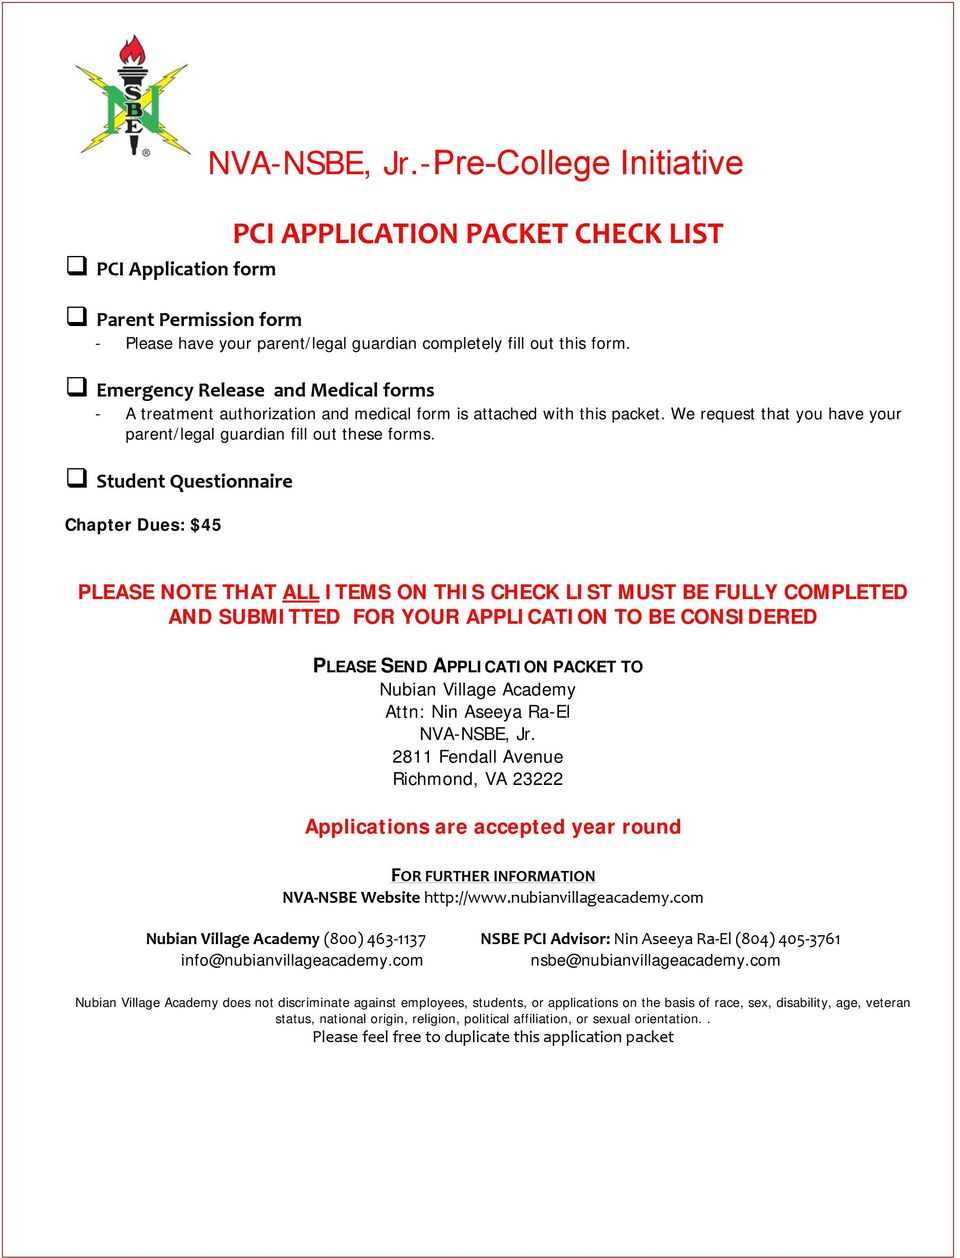 Student Questionnaire Chapter Dues: $45 PLEASE NOTE THAT ALL ITEMS ON THIS CHECK LIST MUST BE FULLY COMPLETED AND SUBMITTED FOR YOUR APPLICATION TO BE CONSIDERED PLEASE SEND APPLICATION PACKET TO